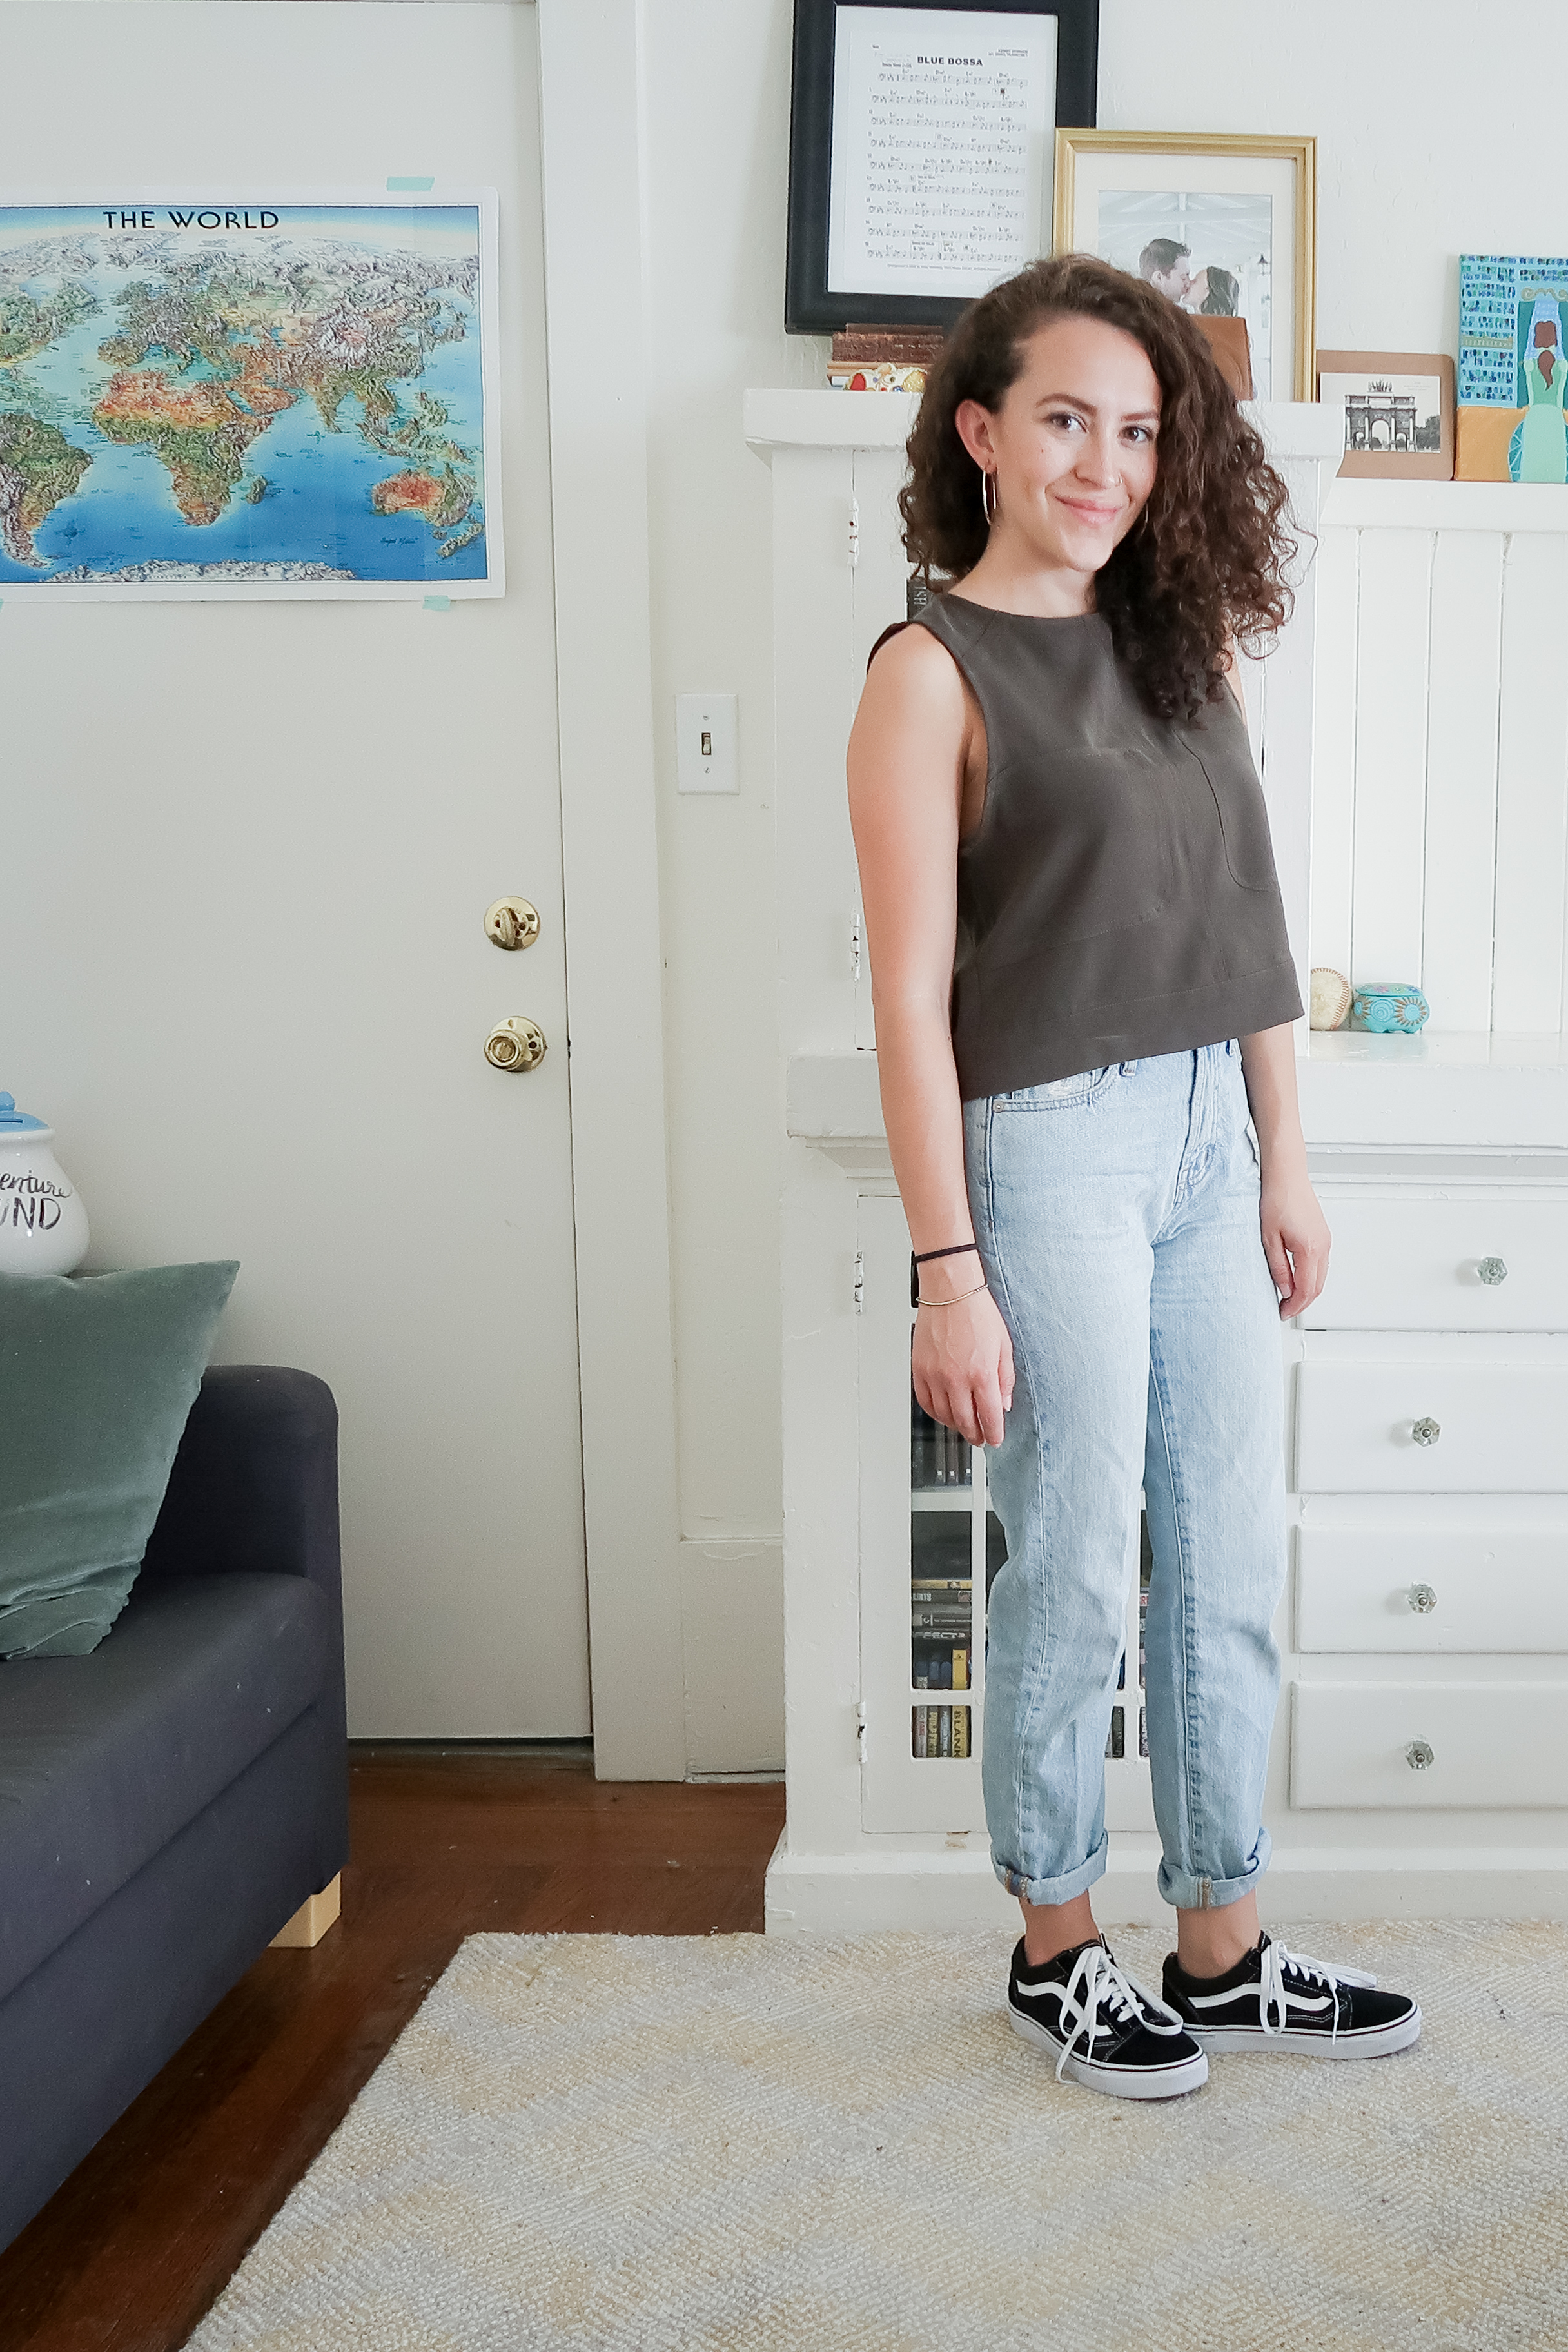 10 pieces, 10 outfits -- an olive green boxy crop top worn with light wash high rise mom jeans (aka the perfect summer jean from madewell) and low top old skool vans sneakers